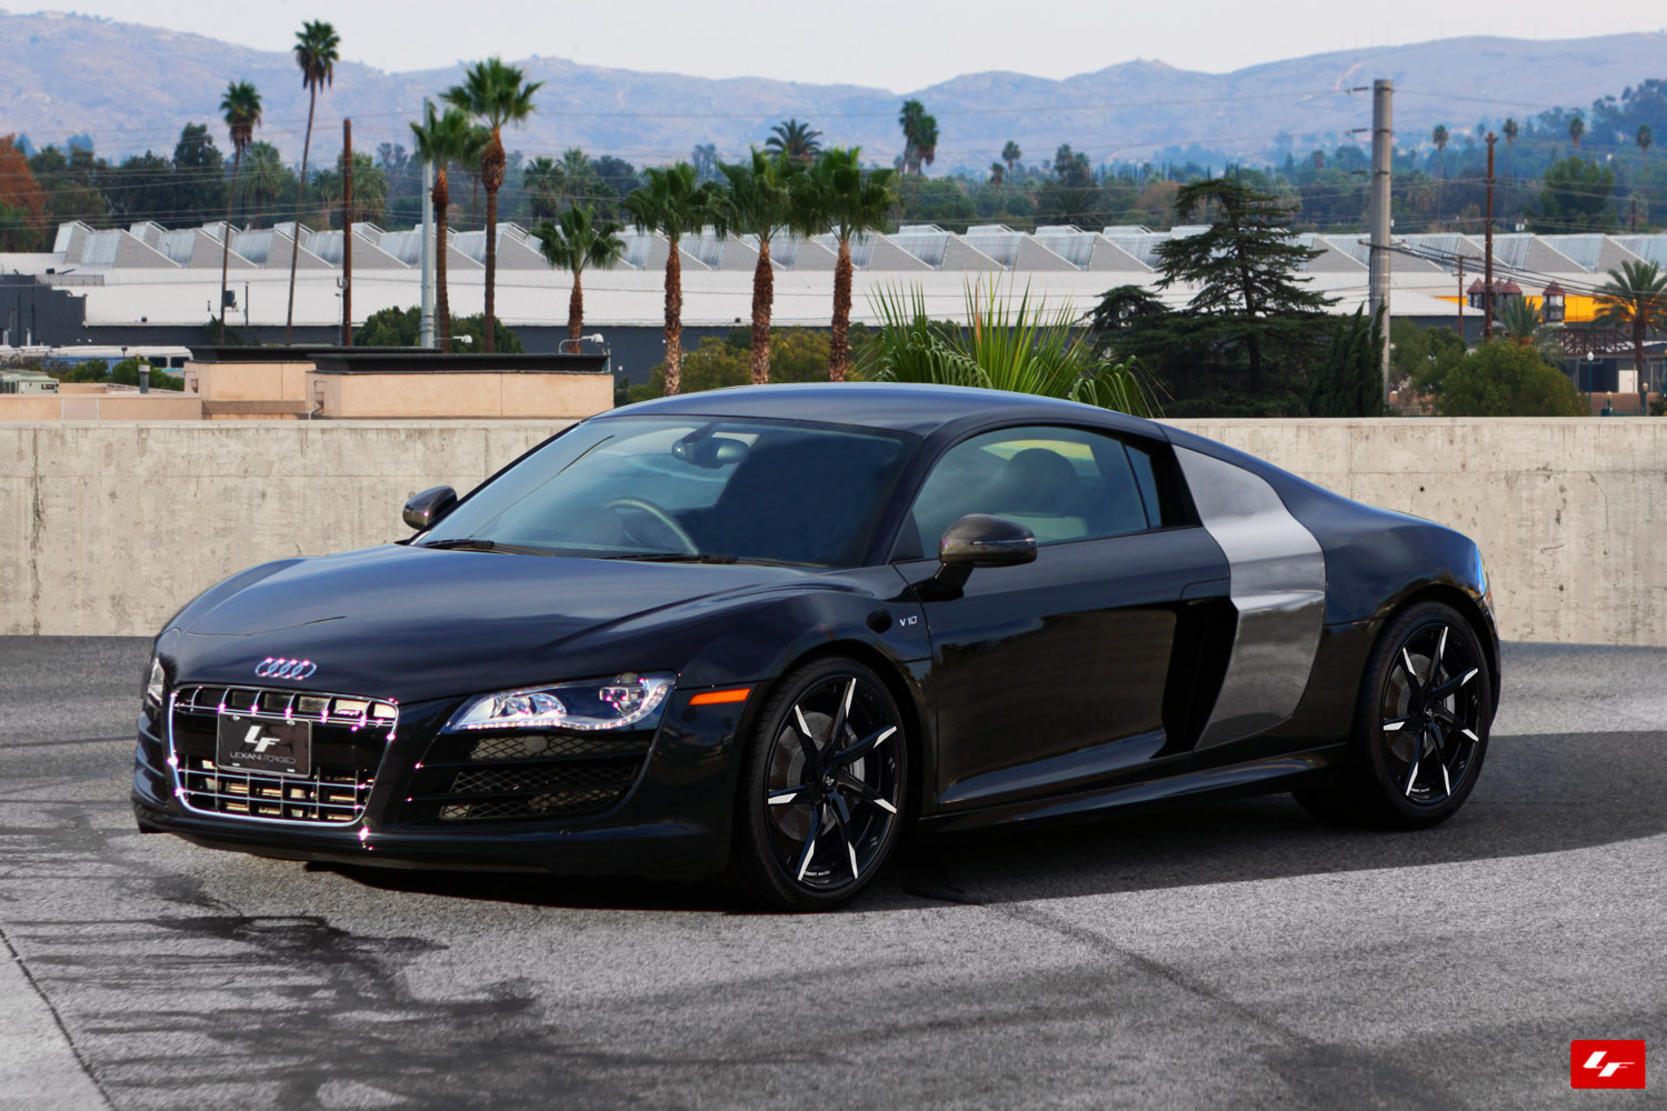 Custom on the 2013 Audi R8.